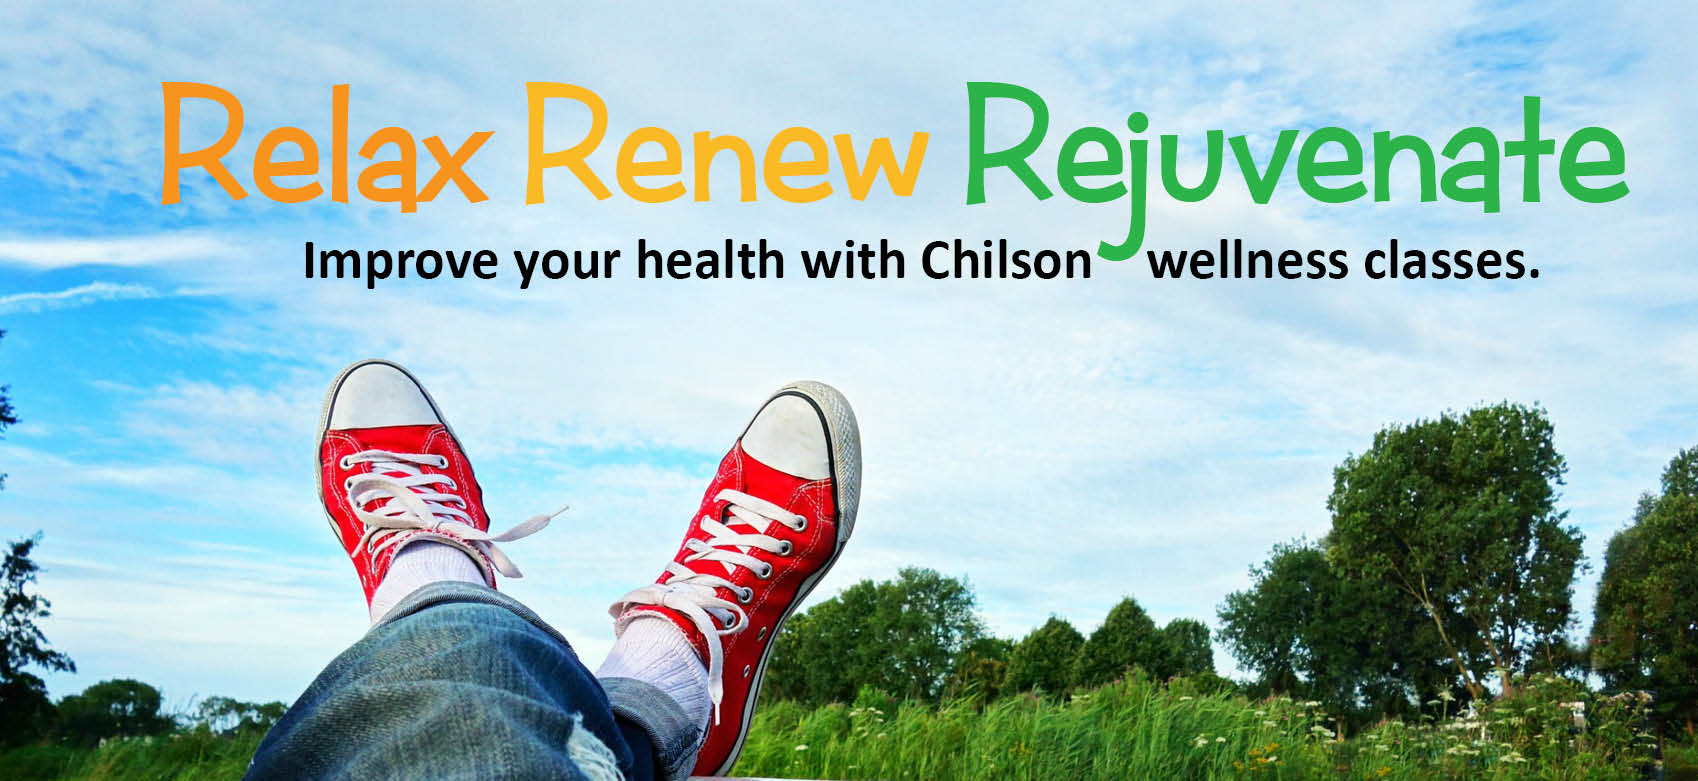 Improve your health with Chilson wellness classes